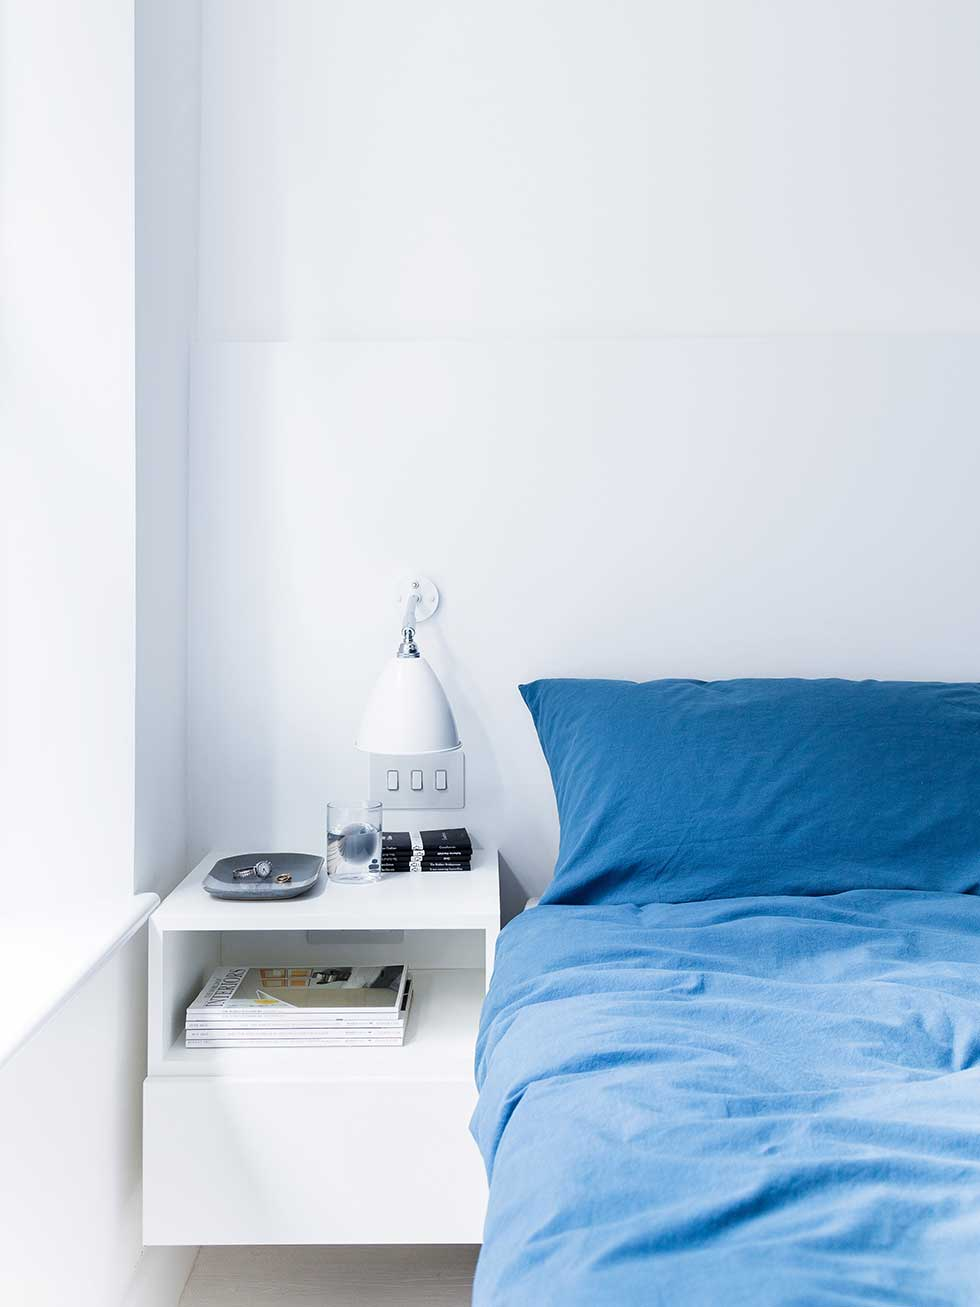 london flat white bedroom blue bedding bedside table